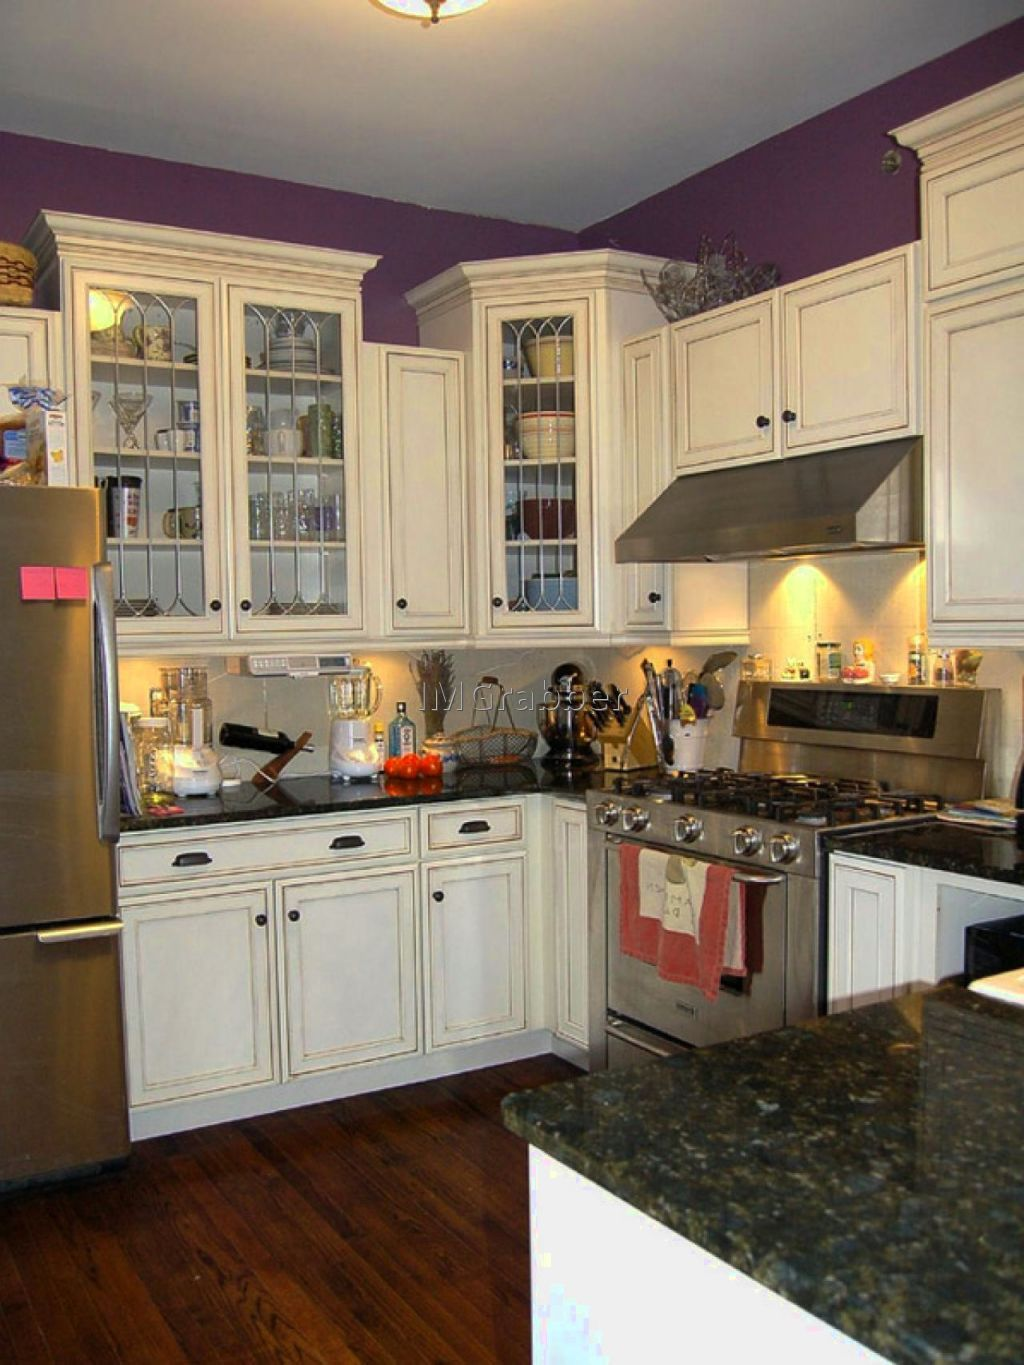 small kitchen white cabinets - http://modernkitchencabinet.top/small-kitchen-white-cabinets/